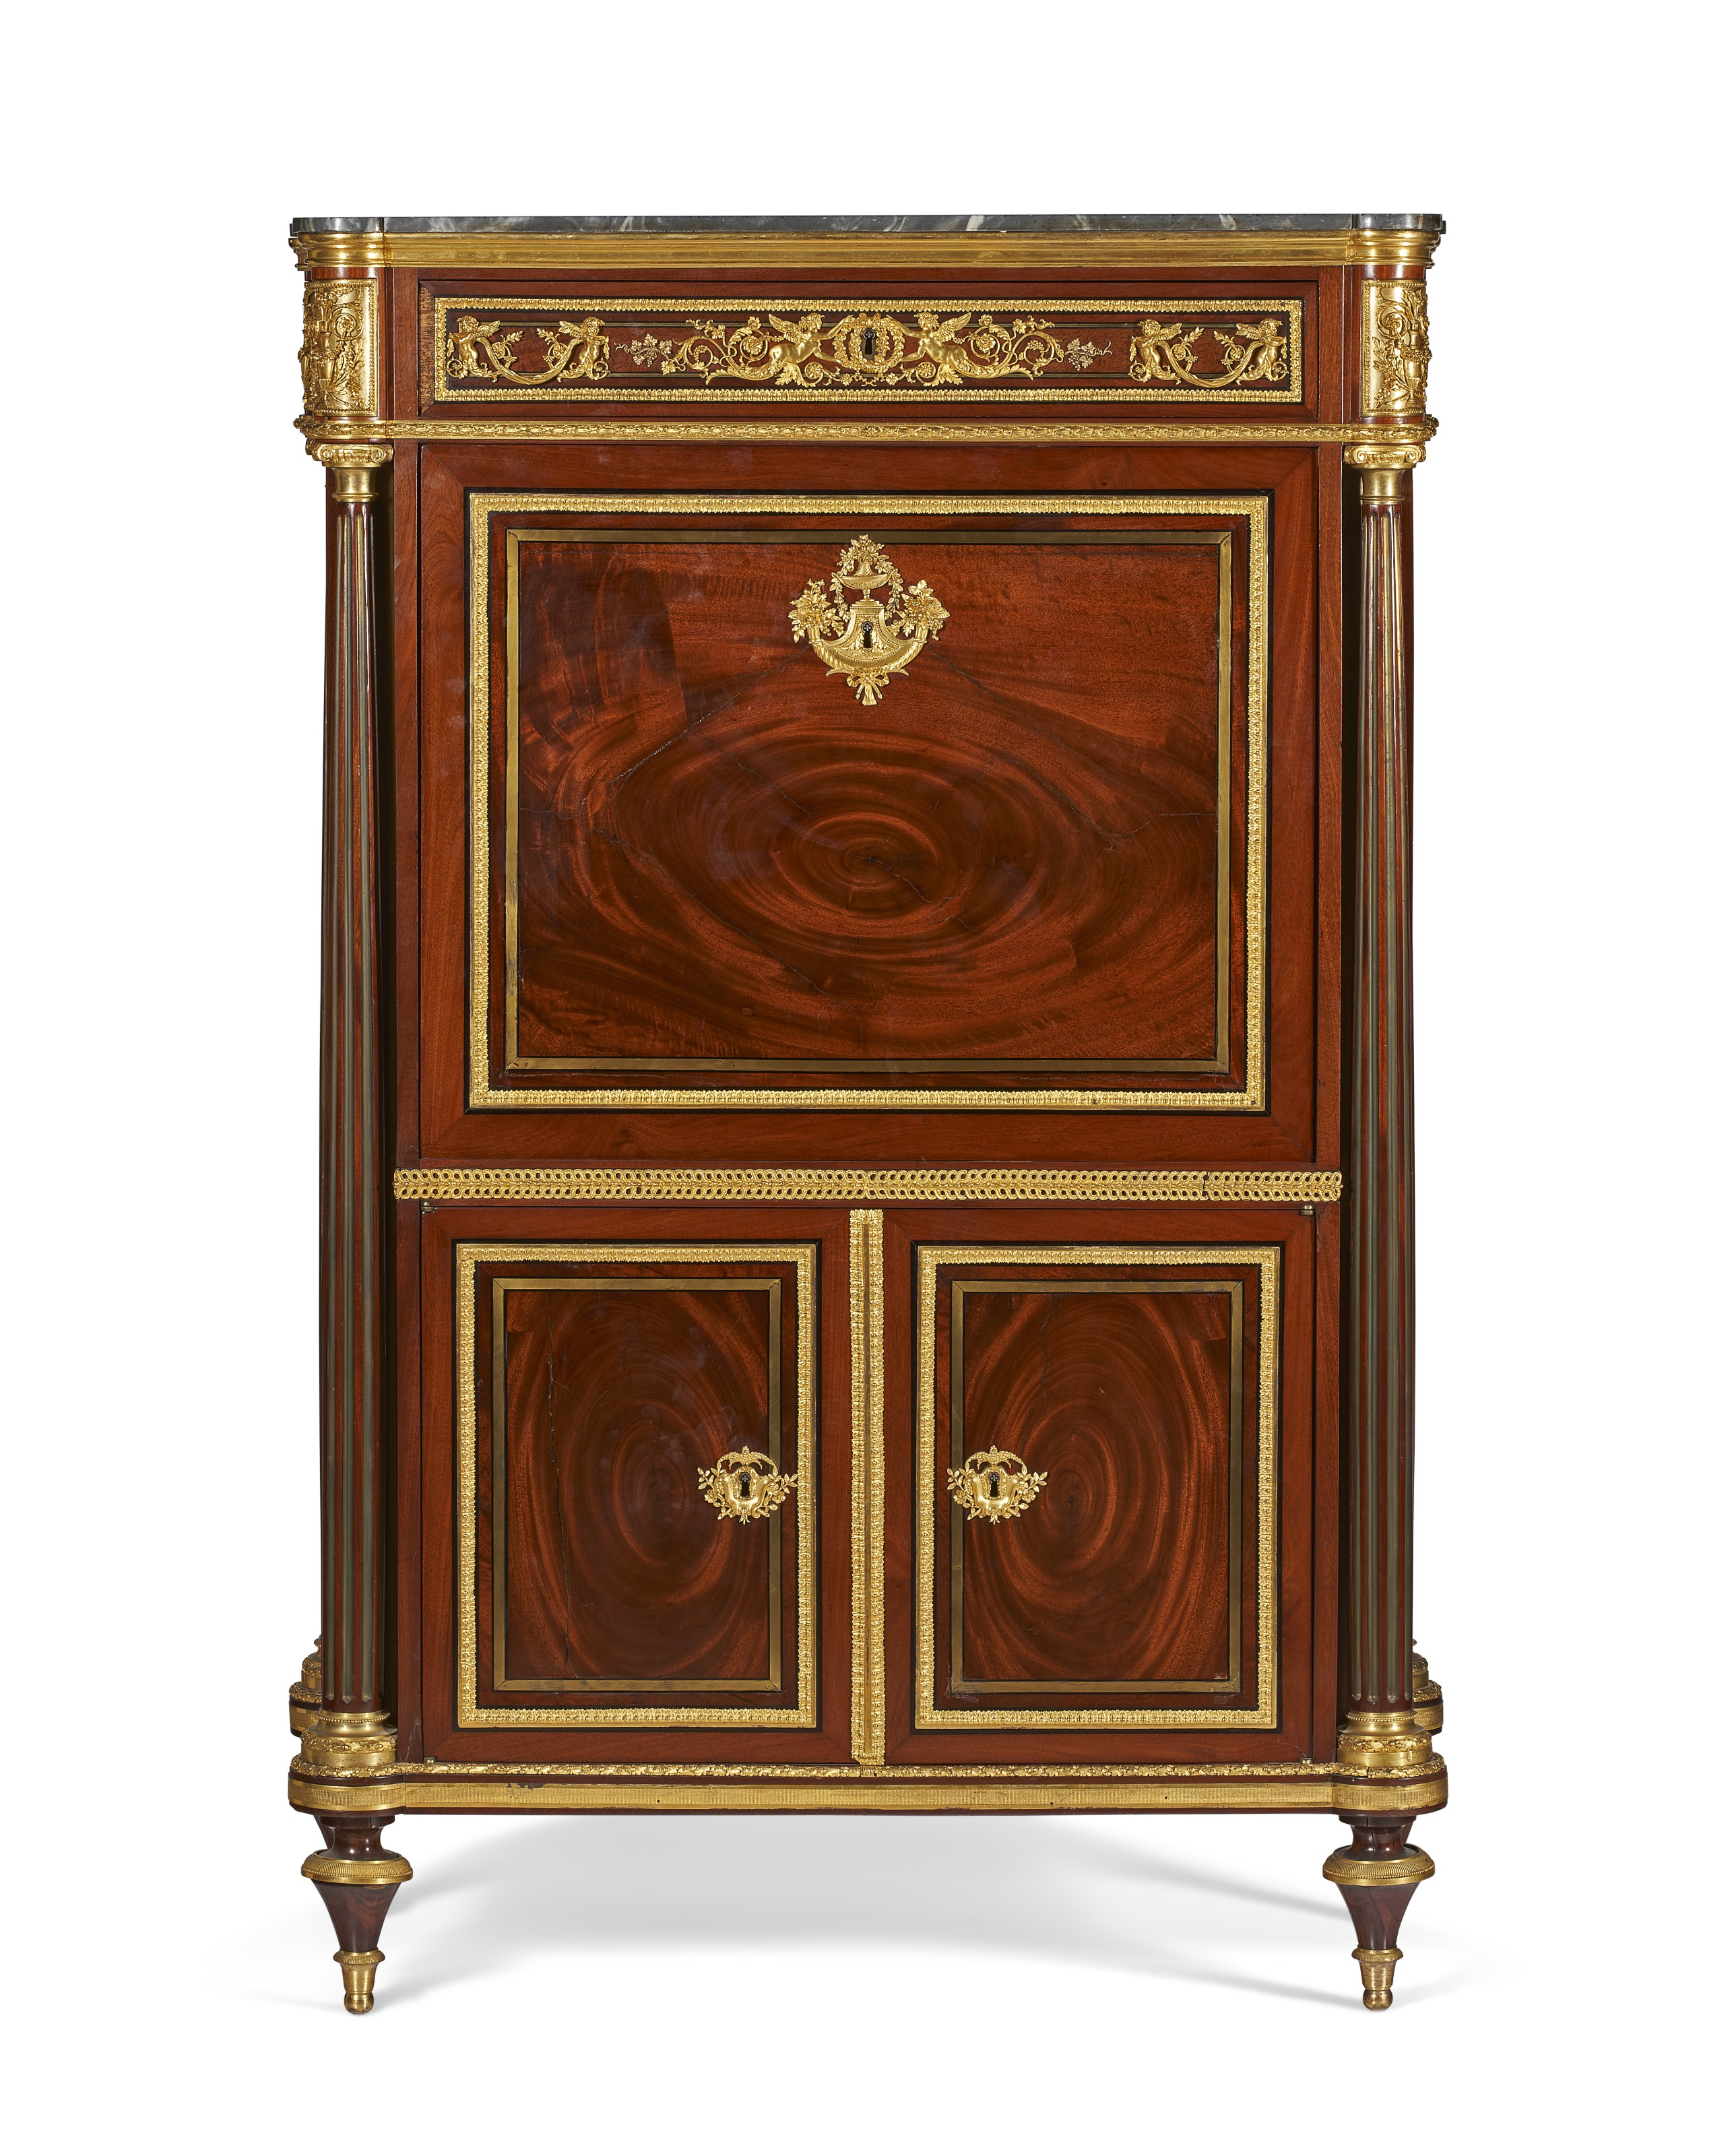 A late Louis XVI ormolu-mounted, brass and ebony-inlaid mahogany secretaire a abattant, c. 1790, attributed to Guillaume Beneman. 57¾  in (147  cm) high, 38  in (96.5  cm) wide, 17  in (43  cm) deep. Estimate $30,000-50,000. Offered in The Collector English & European Furniture, Ceramics, Silver & Works of Art on 5-19 October 2021 at Christie's Online